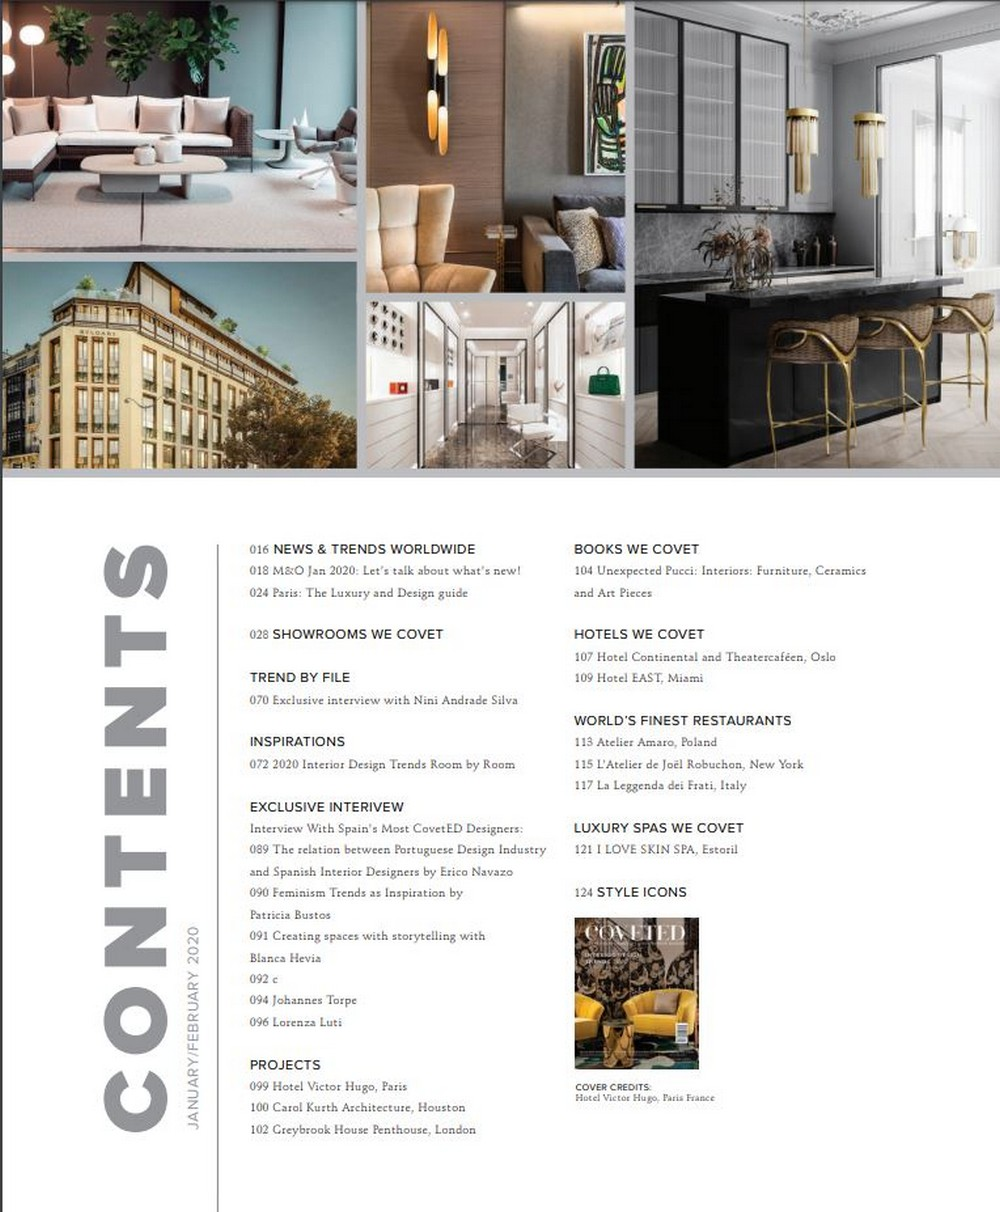 Maison et Objet 2020 - Here Is Why You Should By CovetED's 16th Issue! maison et objet Maison et Objet 2020 – Here Is Why You Should By CovetED's 16th Issue! Maison et Objet 2020 Here Is Why You Should By CovetEDs 16th Issue 2